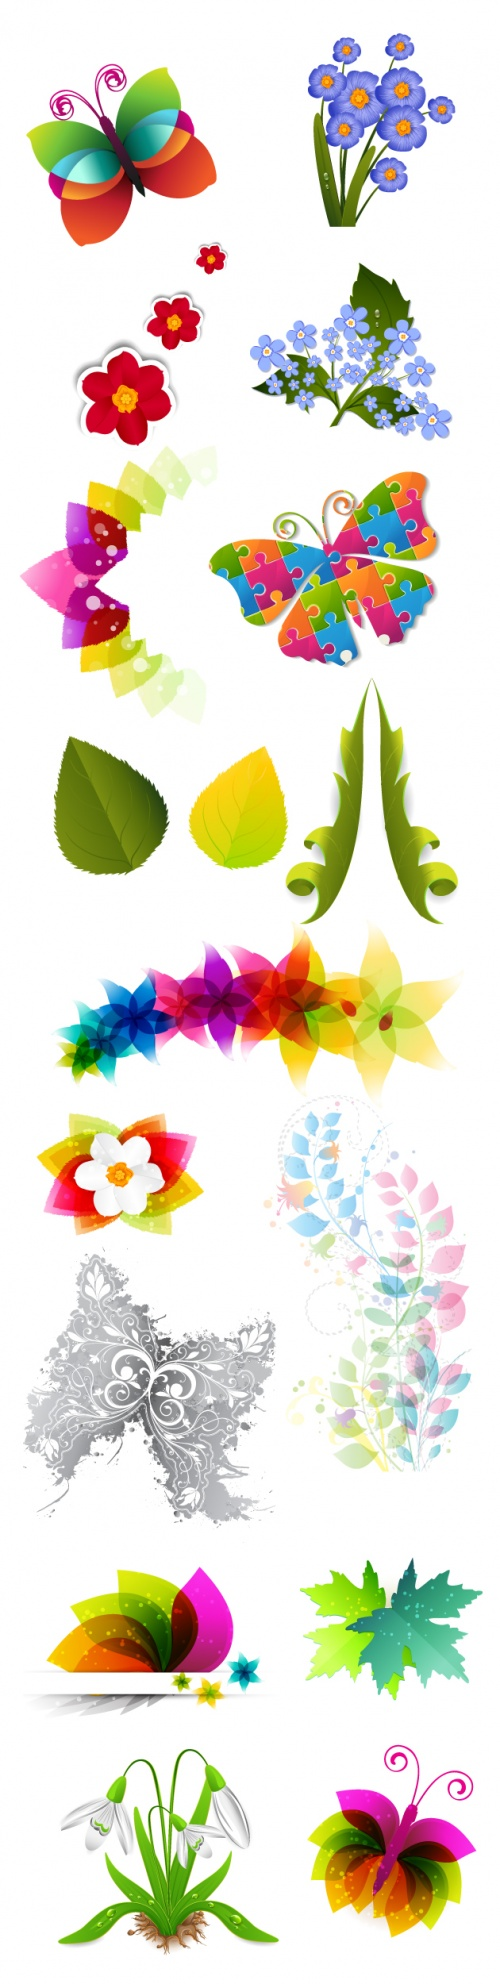 Designtnt - Vector Floral Ornaments Set 7